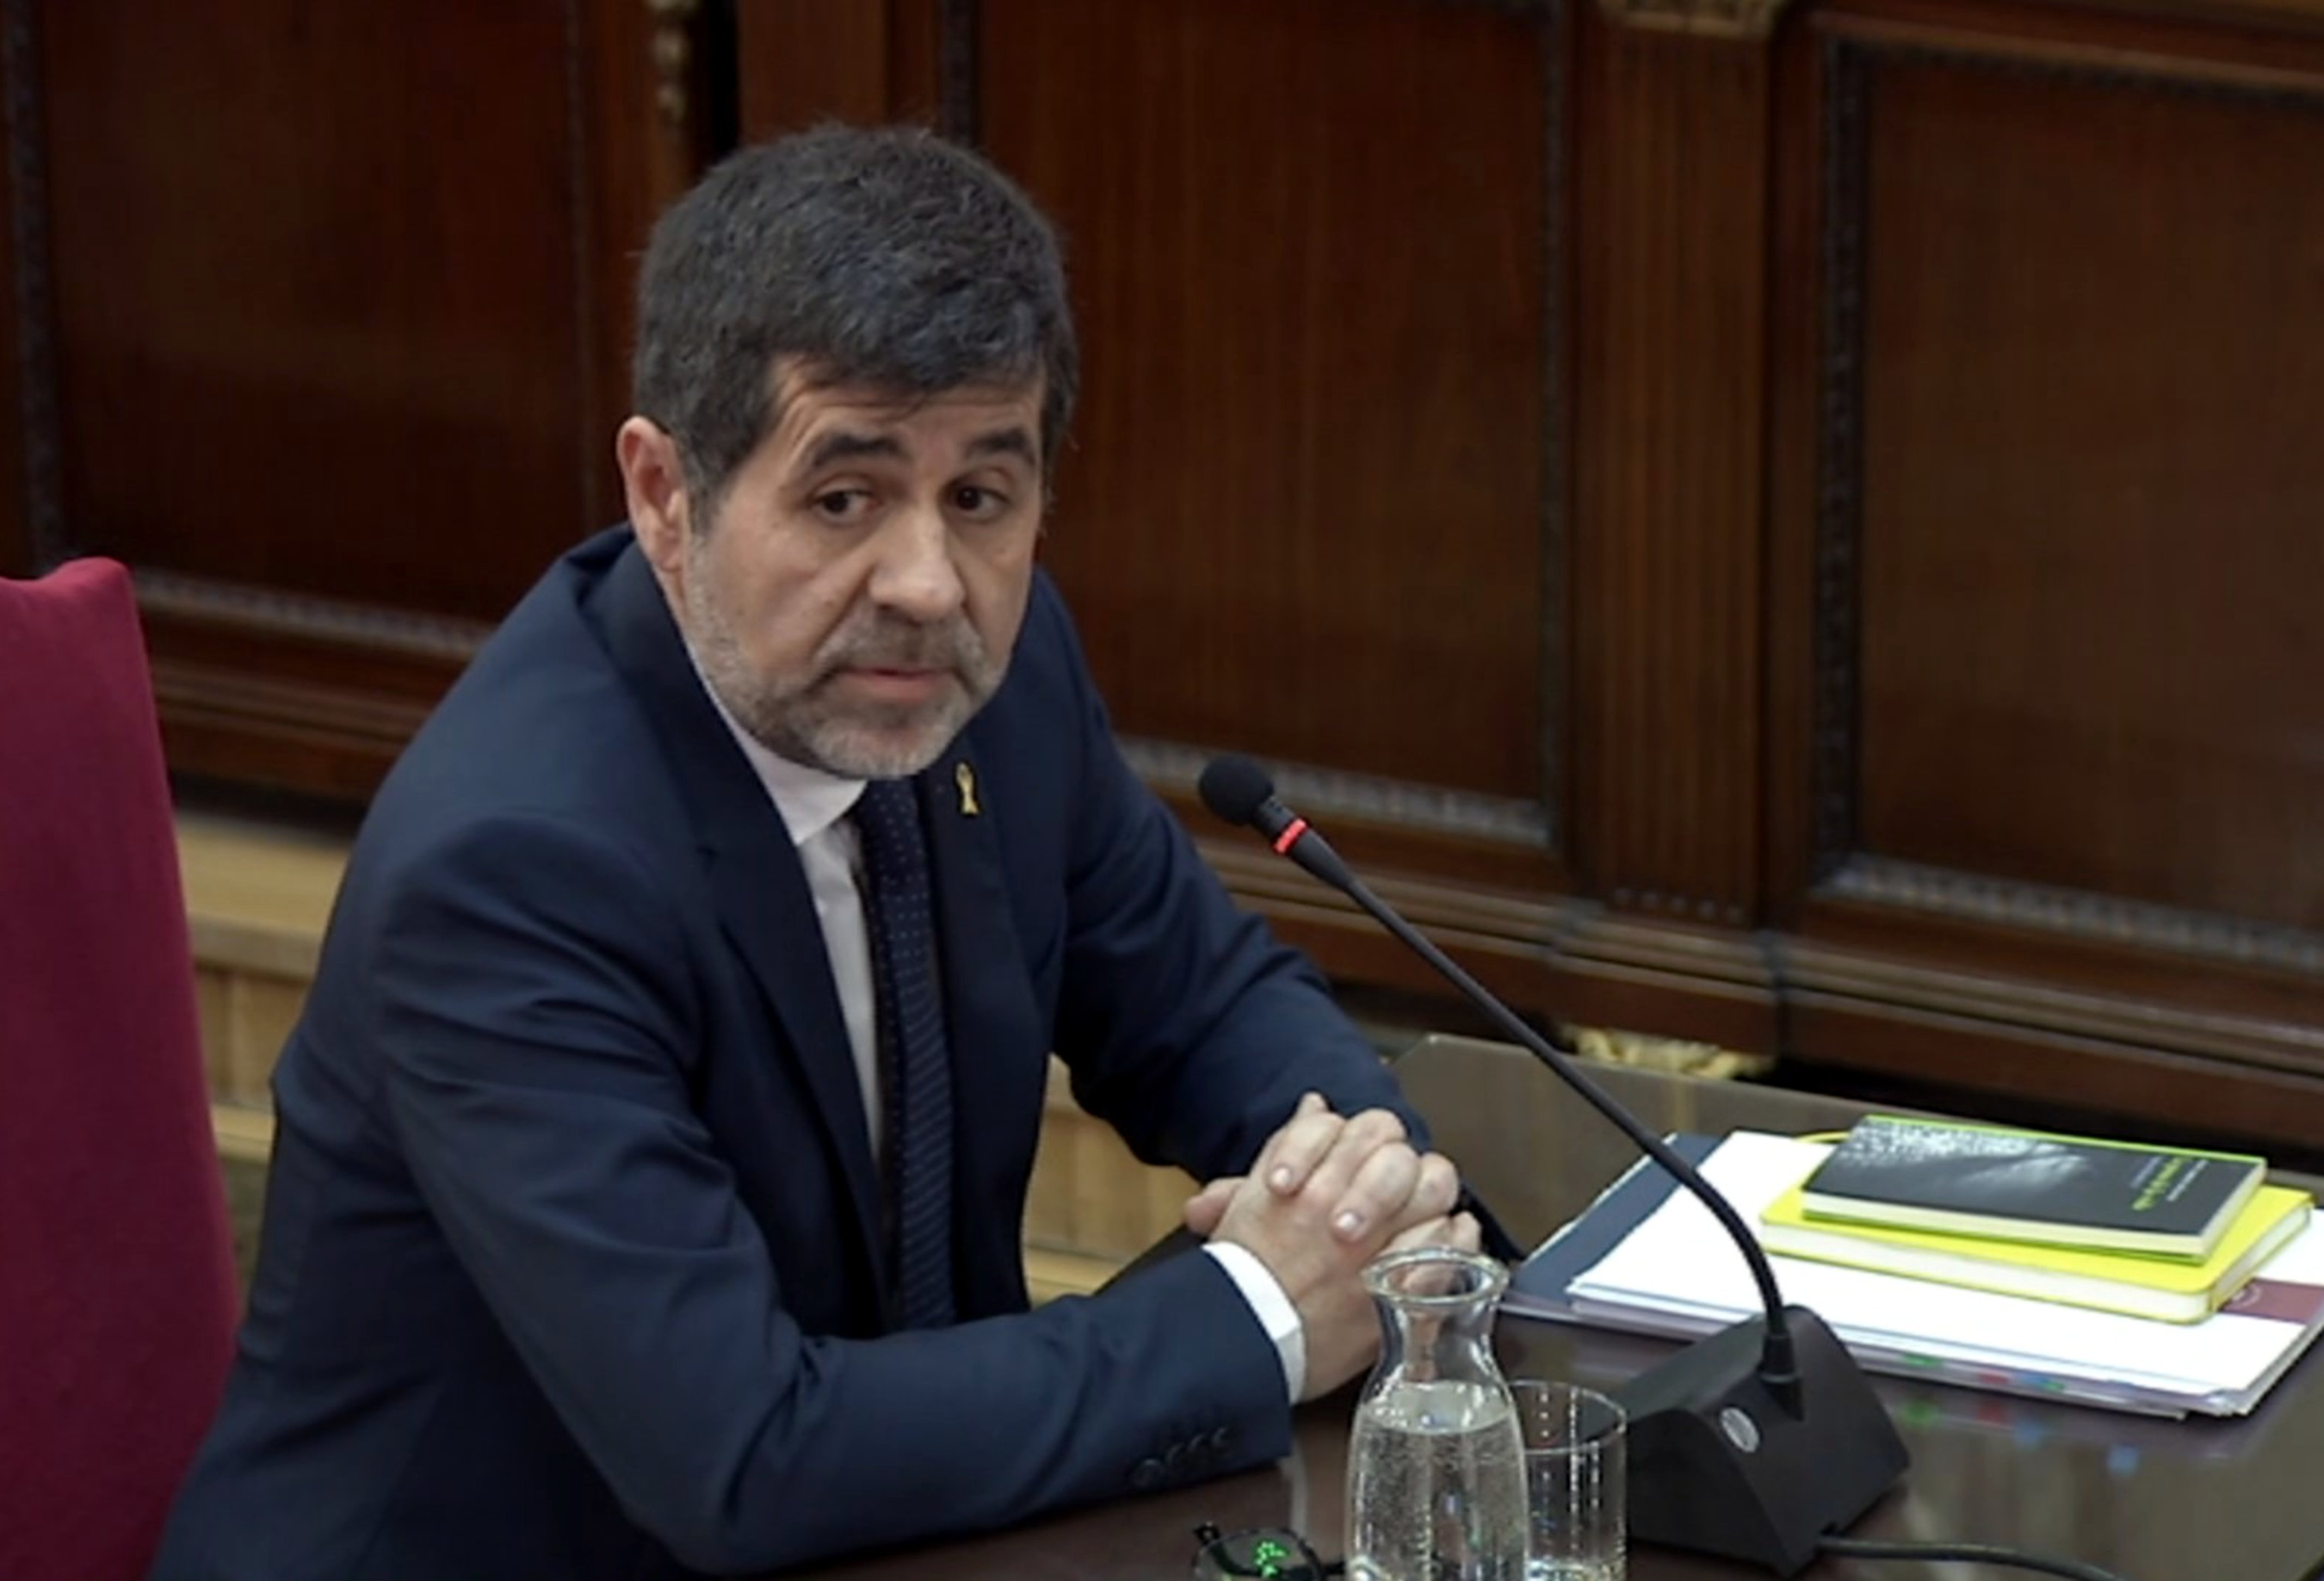 Sànchez evaluates the state of the Catalan independence trial